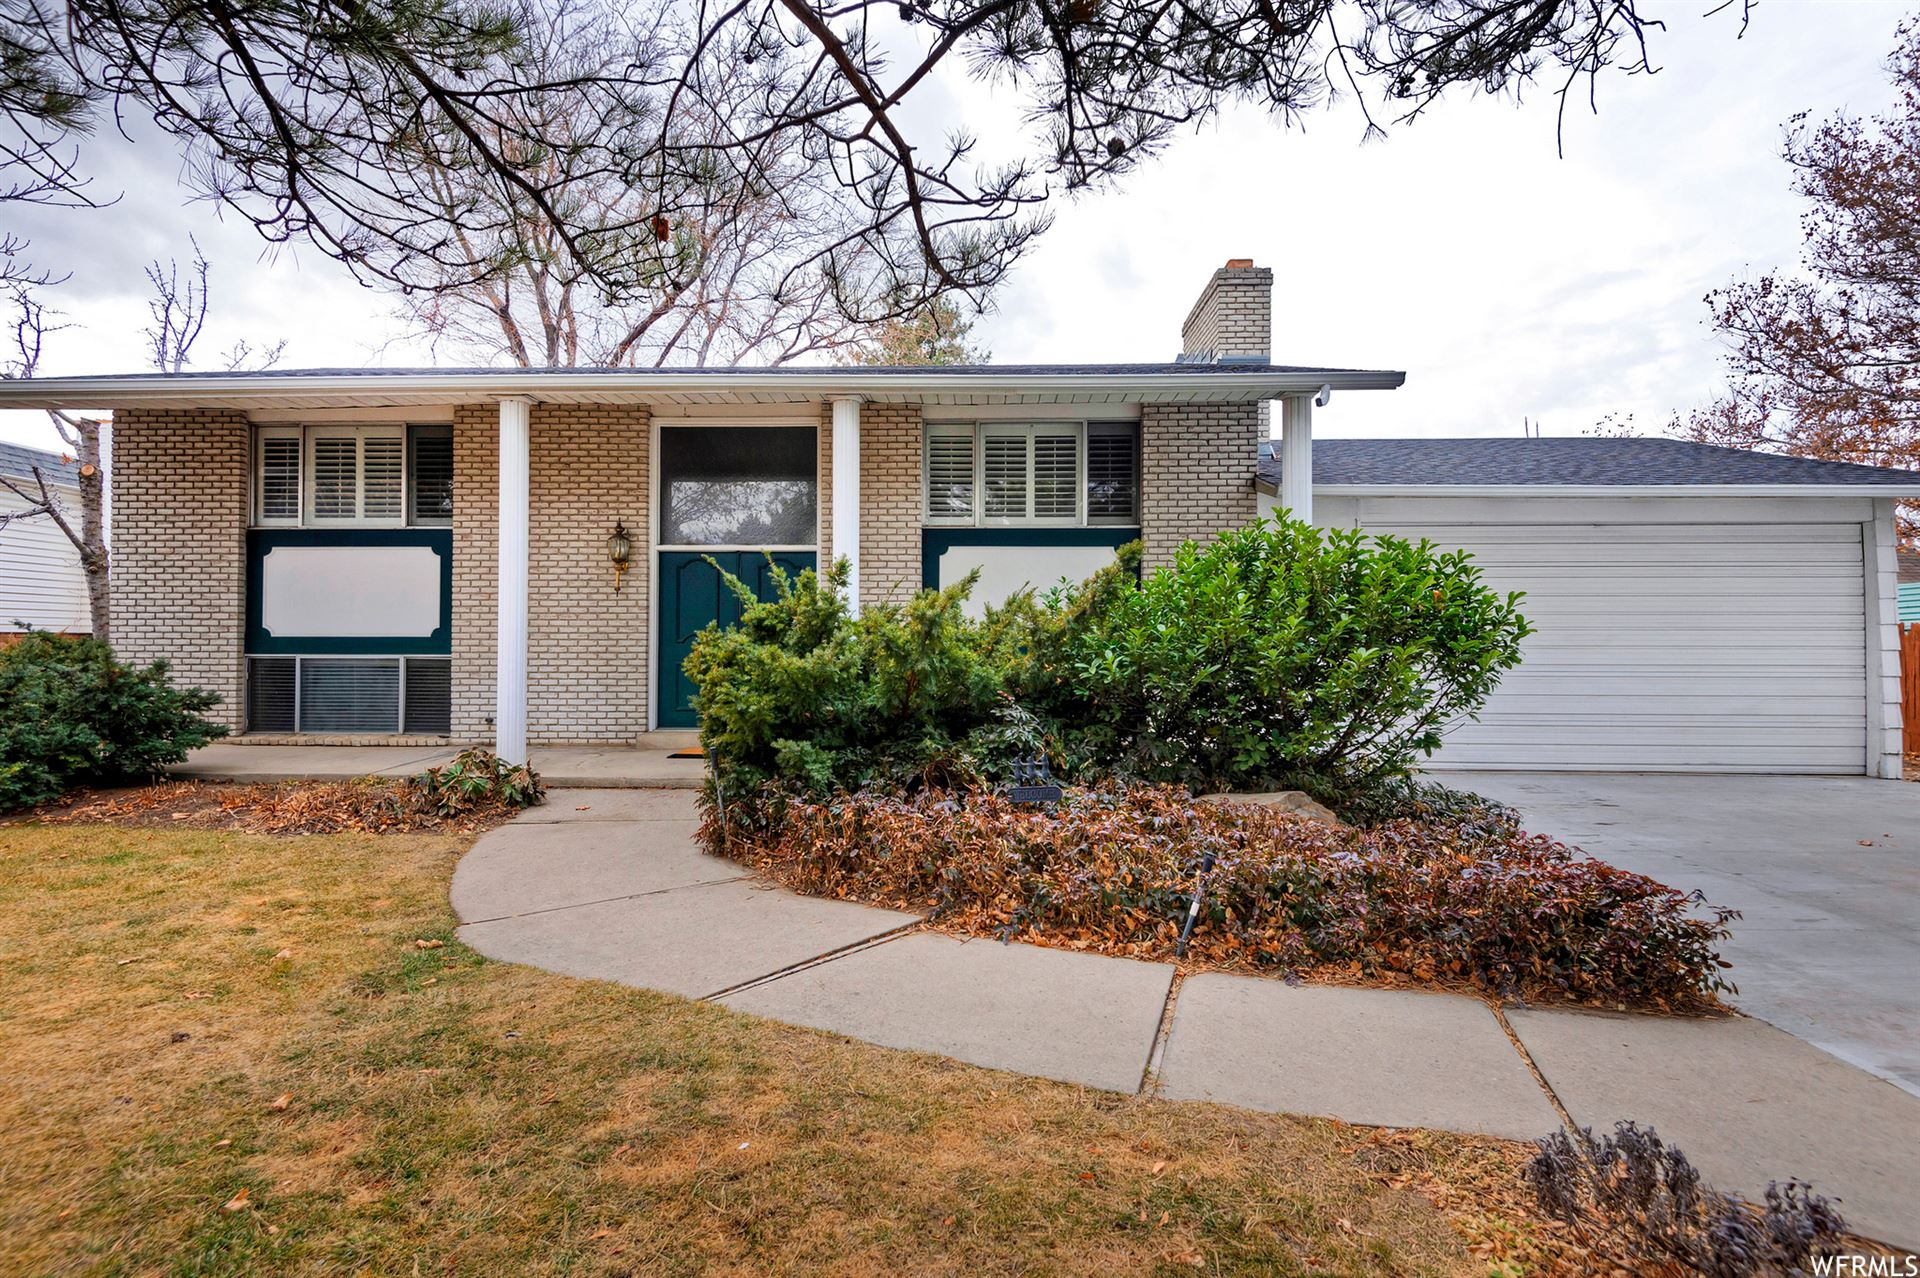 Photo of 5958 S GREENWOOD DR, Murray, UT 84123 (MLS # 1732158)